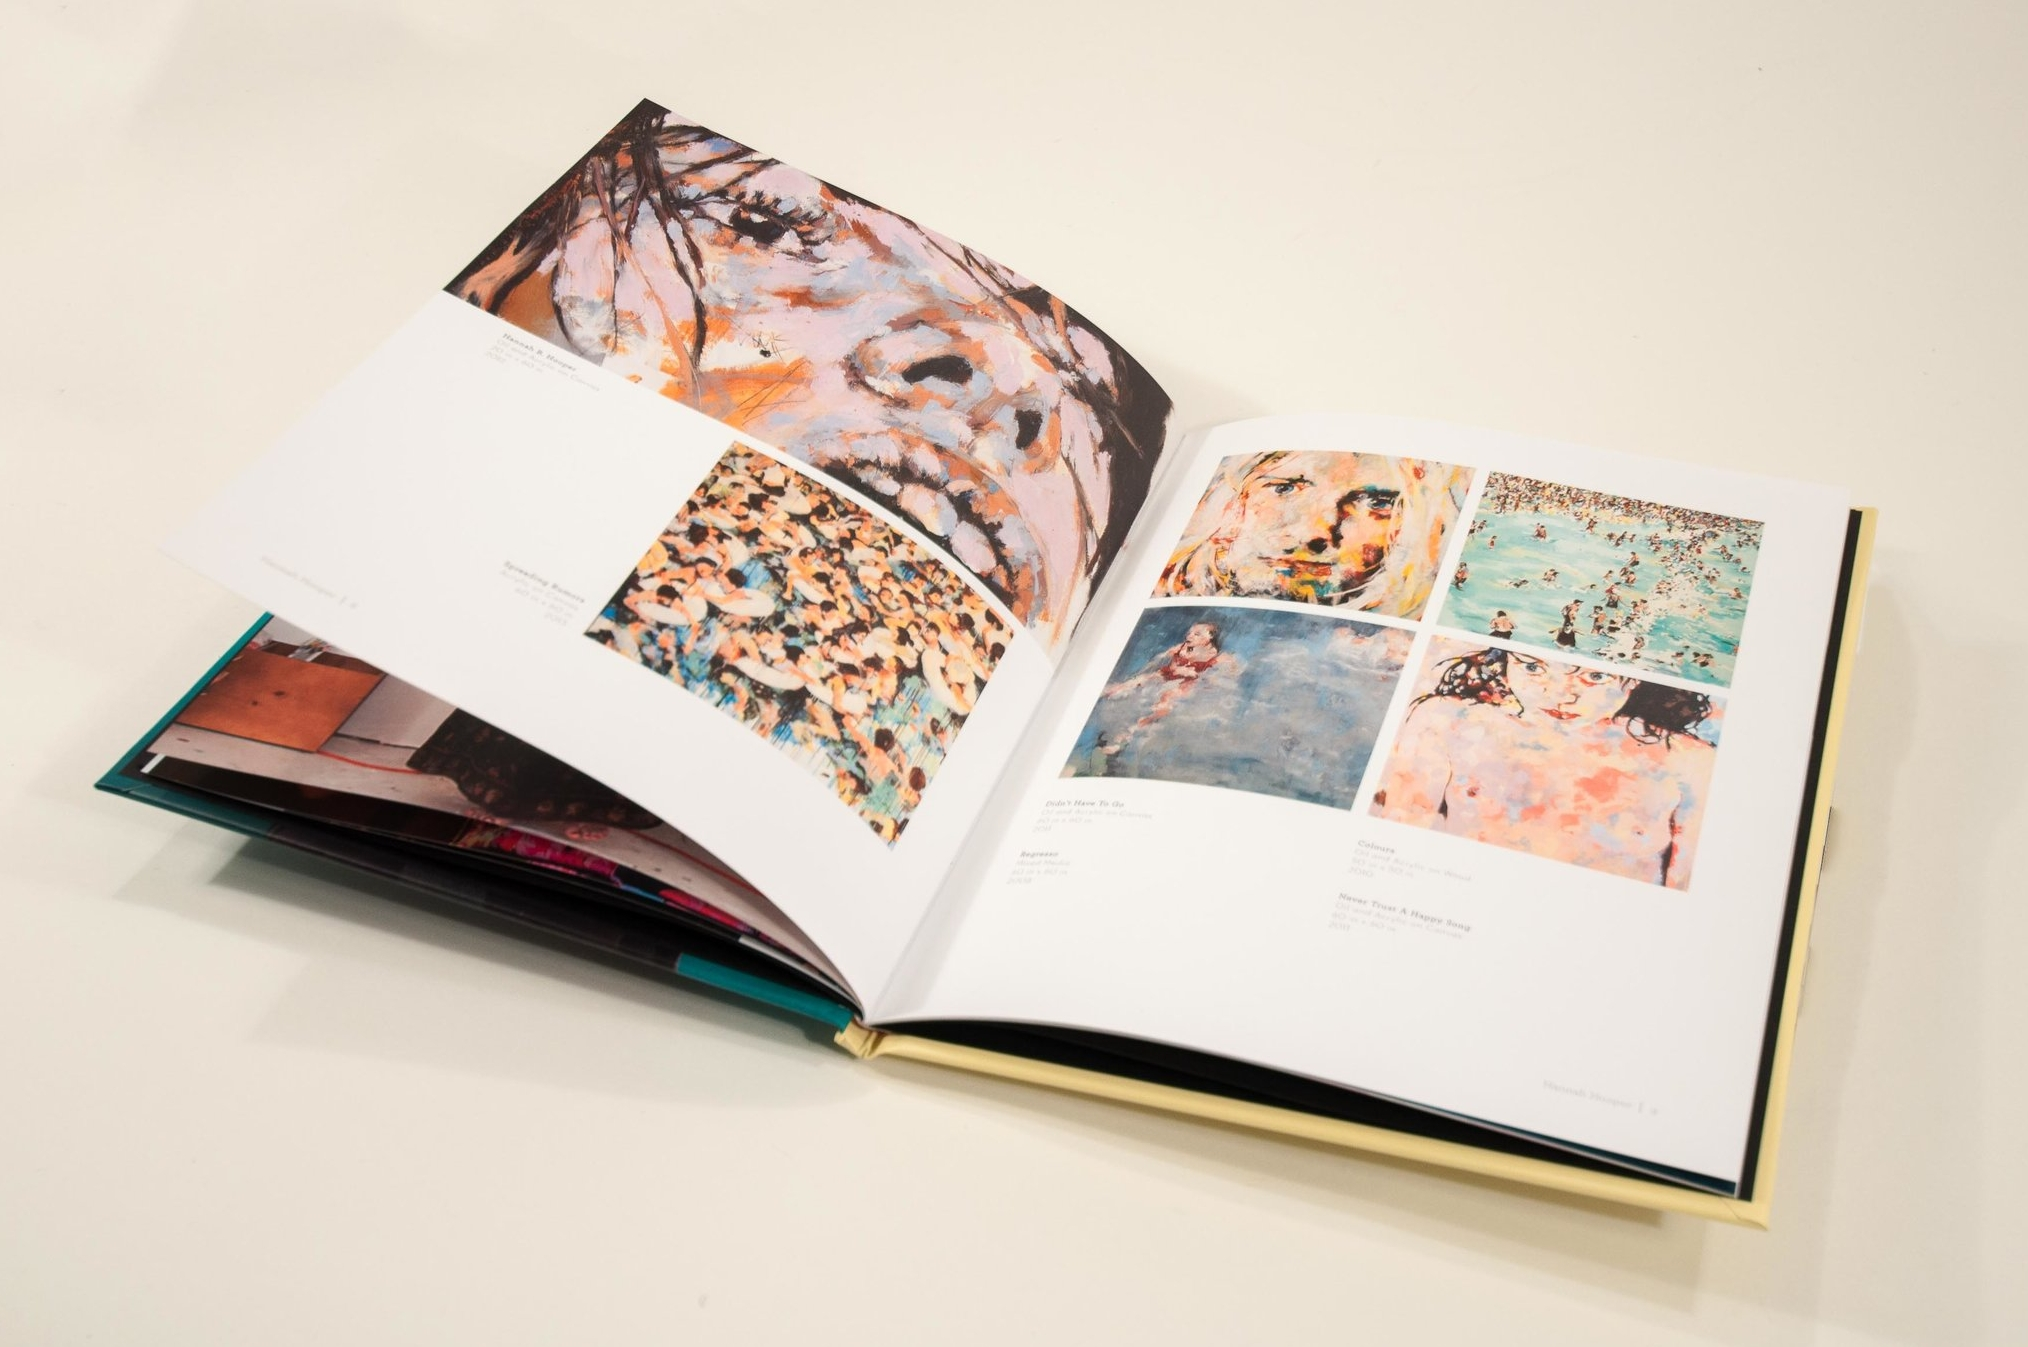 Colleen Goldhorn Photography and Design – Hooplove: The Artwork of Hannah Hooper